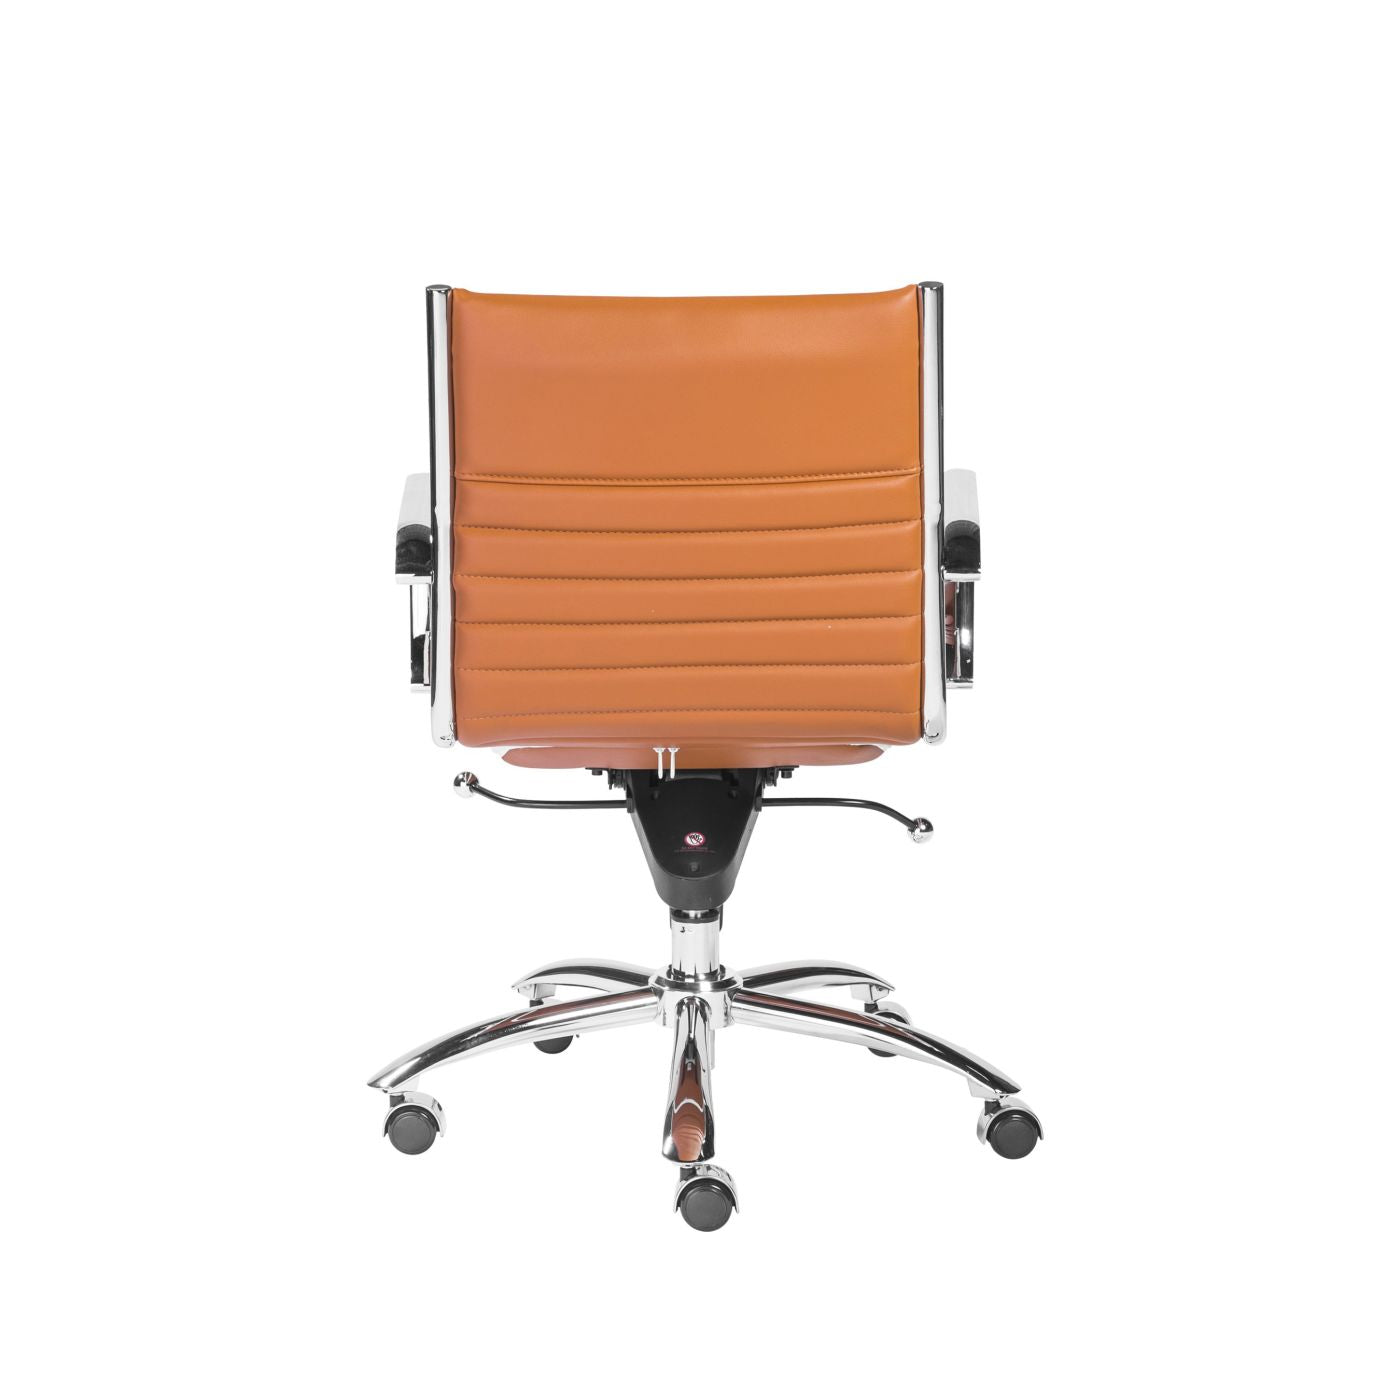 Euro Style Dirk Low Back fice Chair in Cognac with Chrome Base